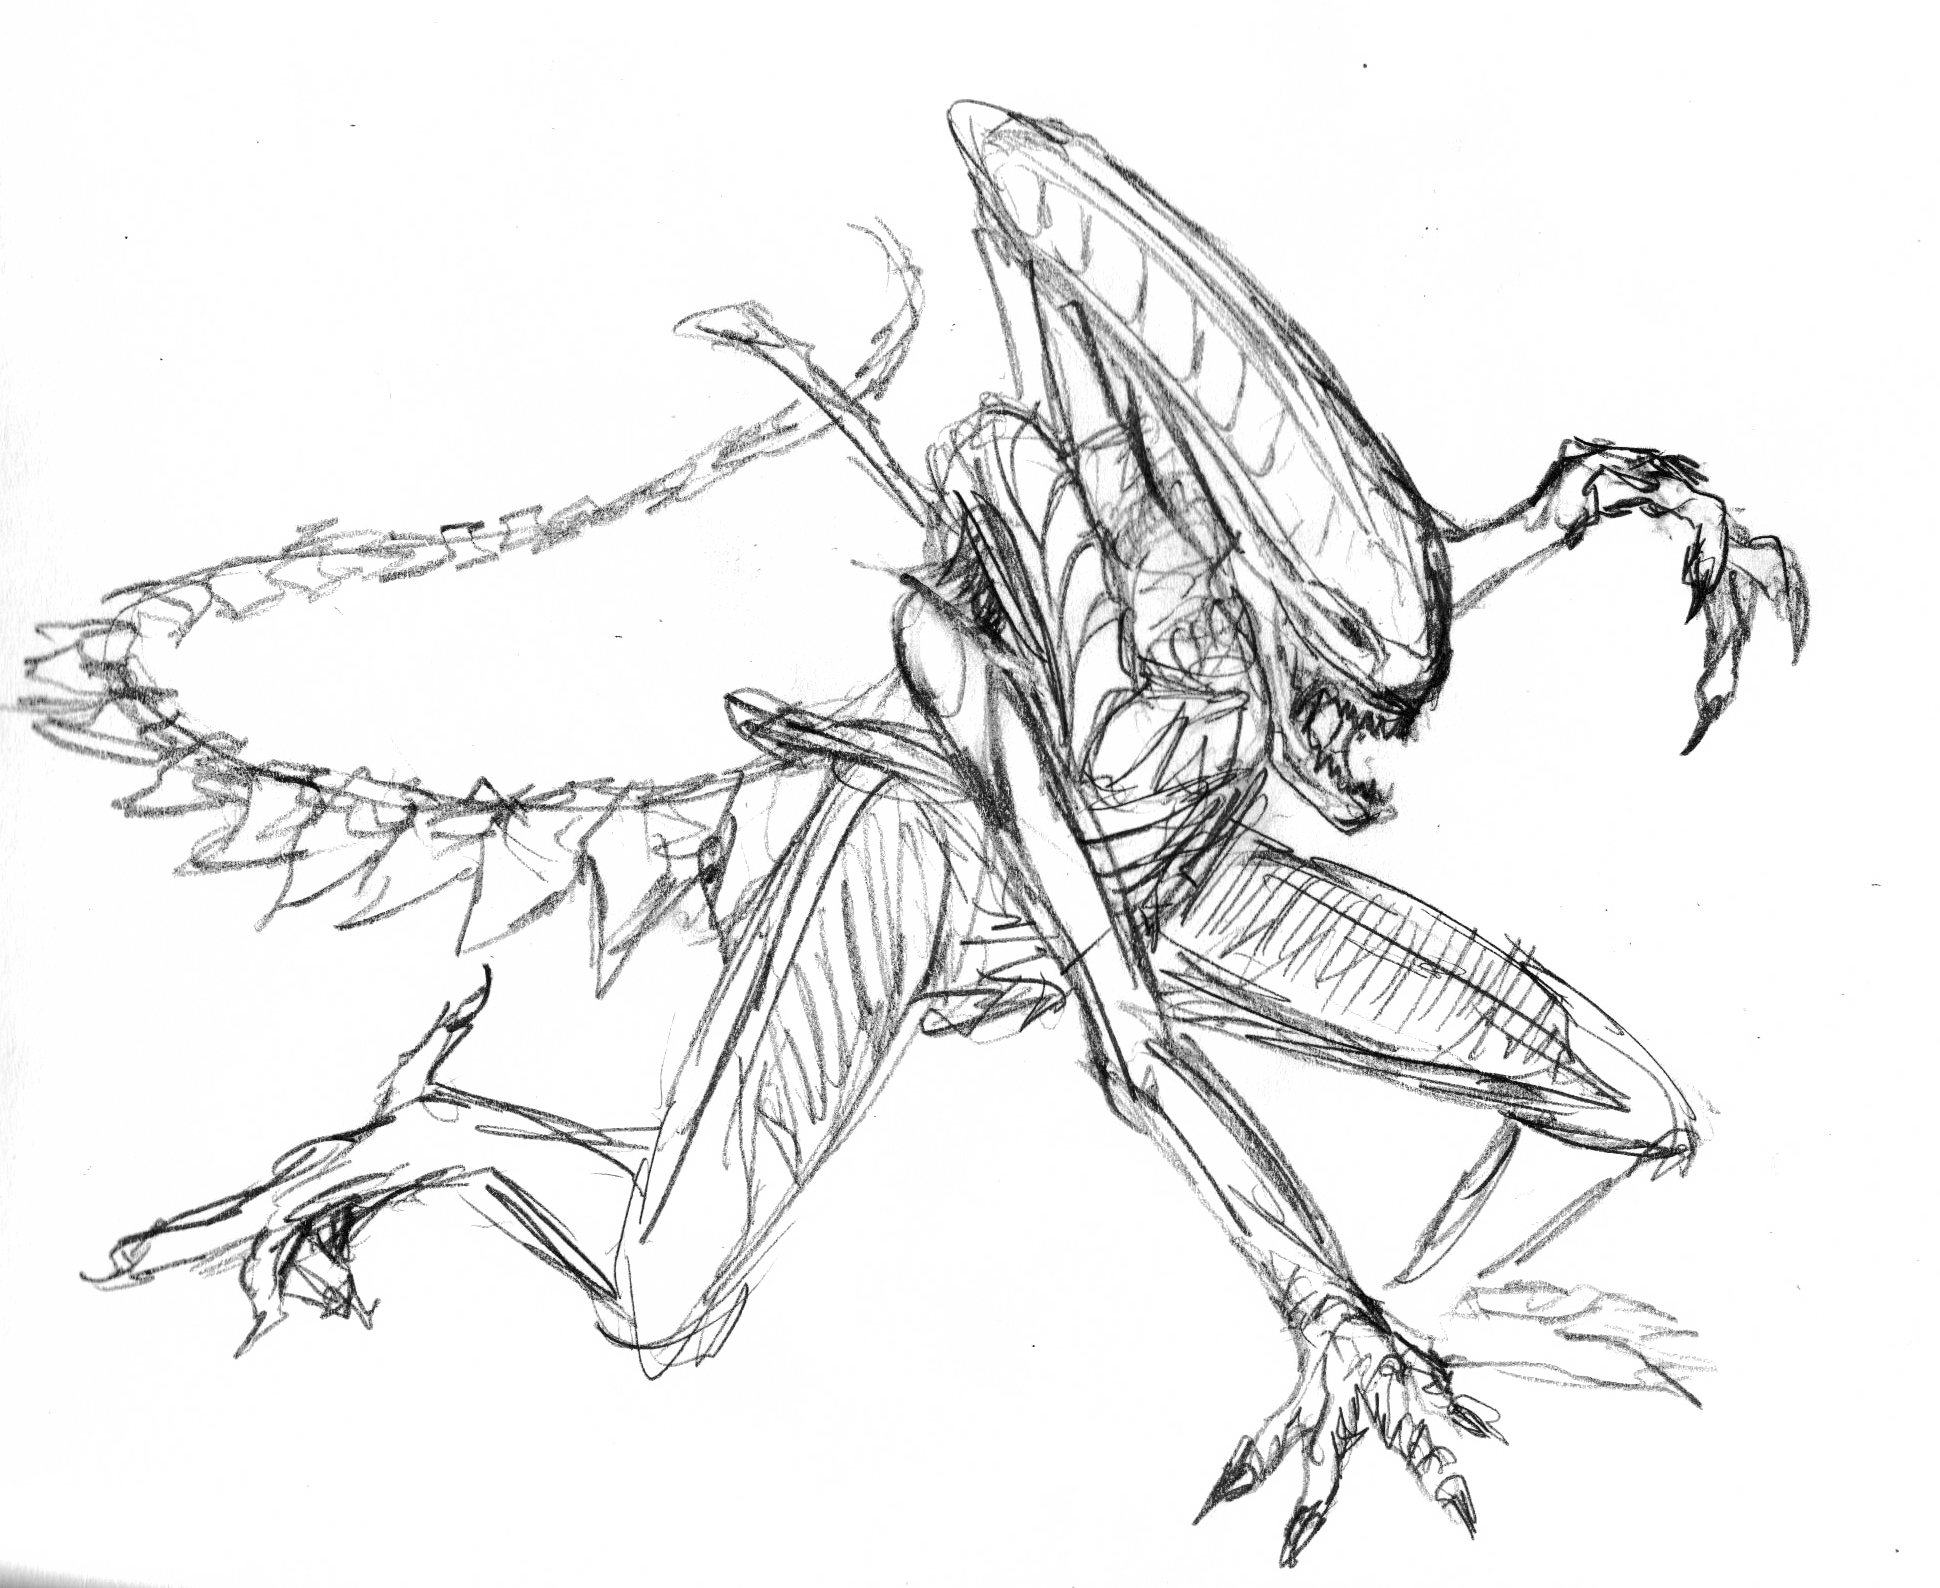 Pictures of Simple Alien Drawings - #rock-cafe